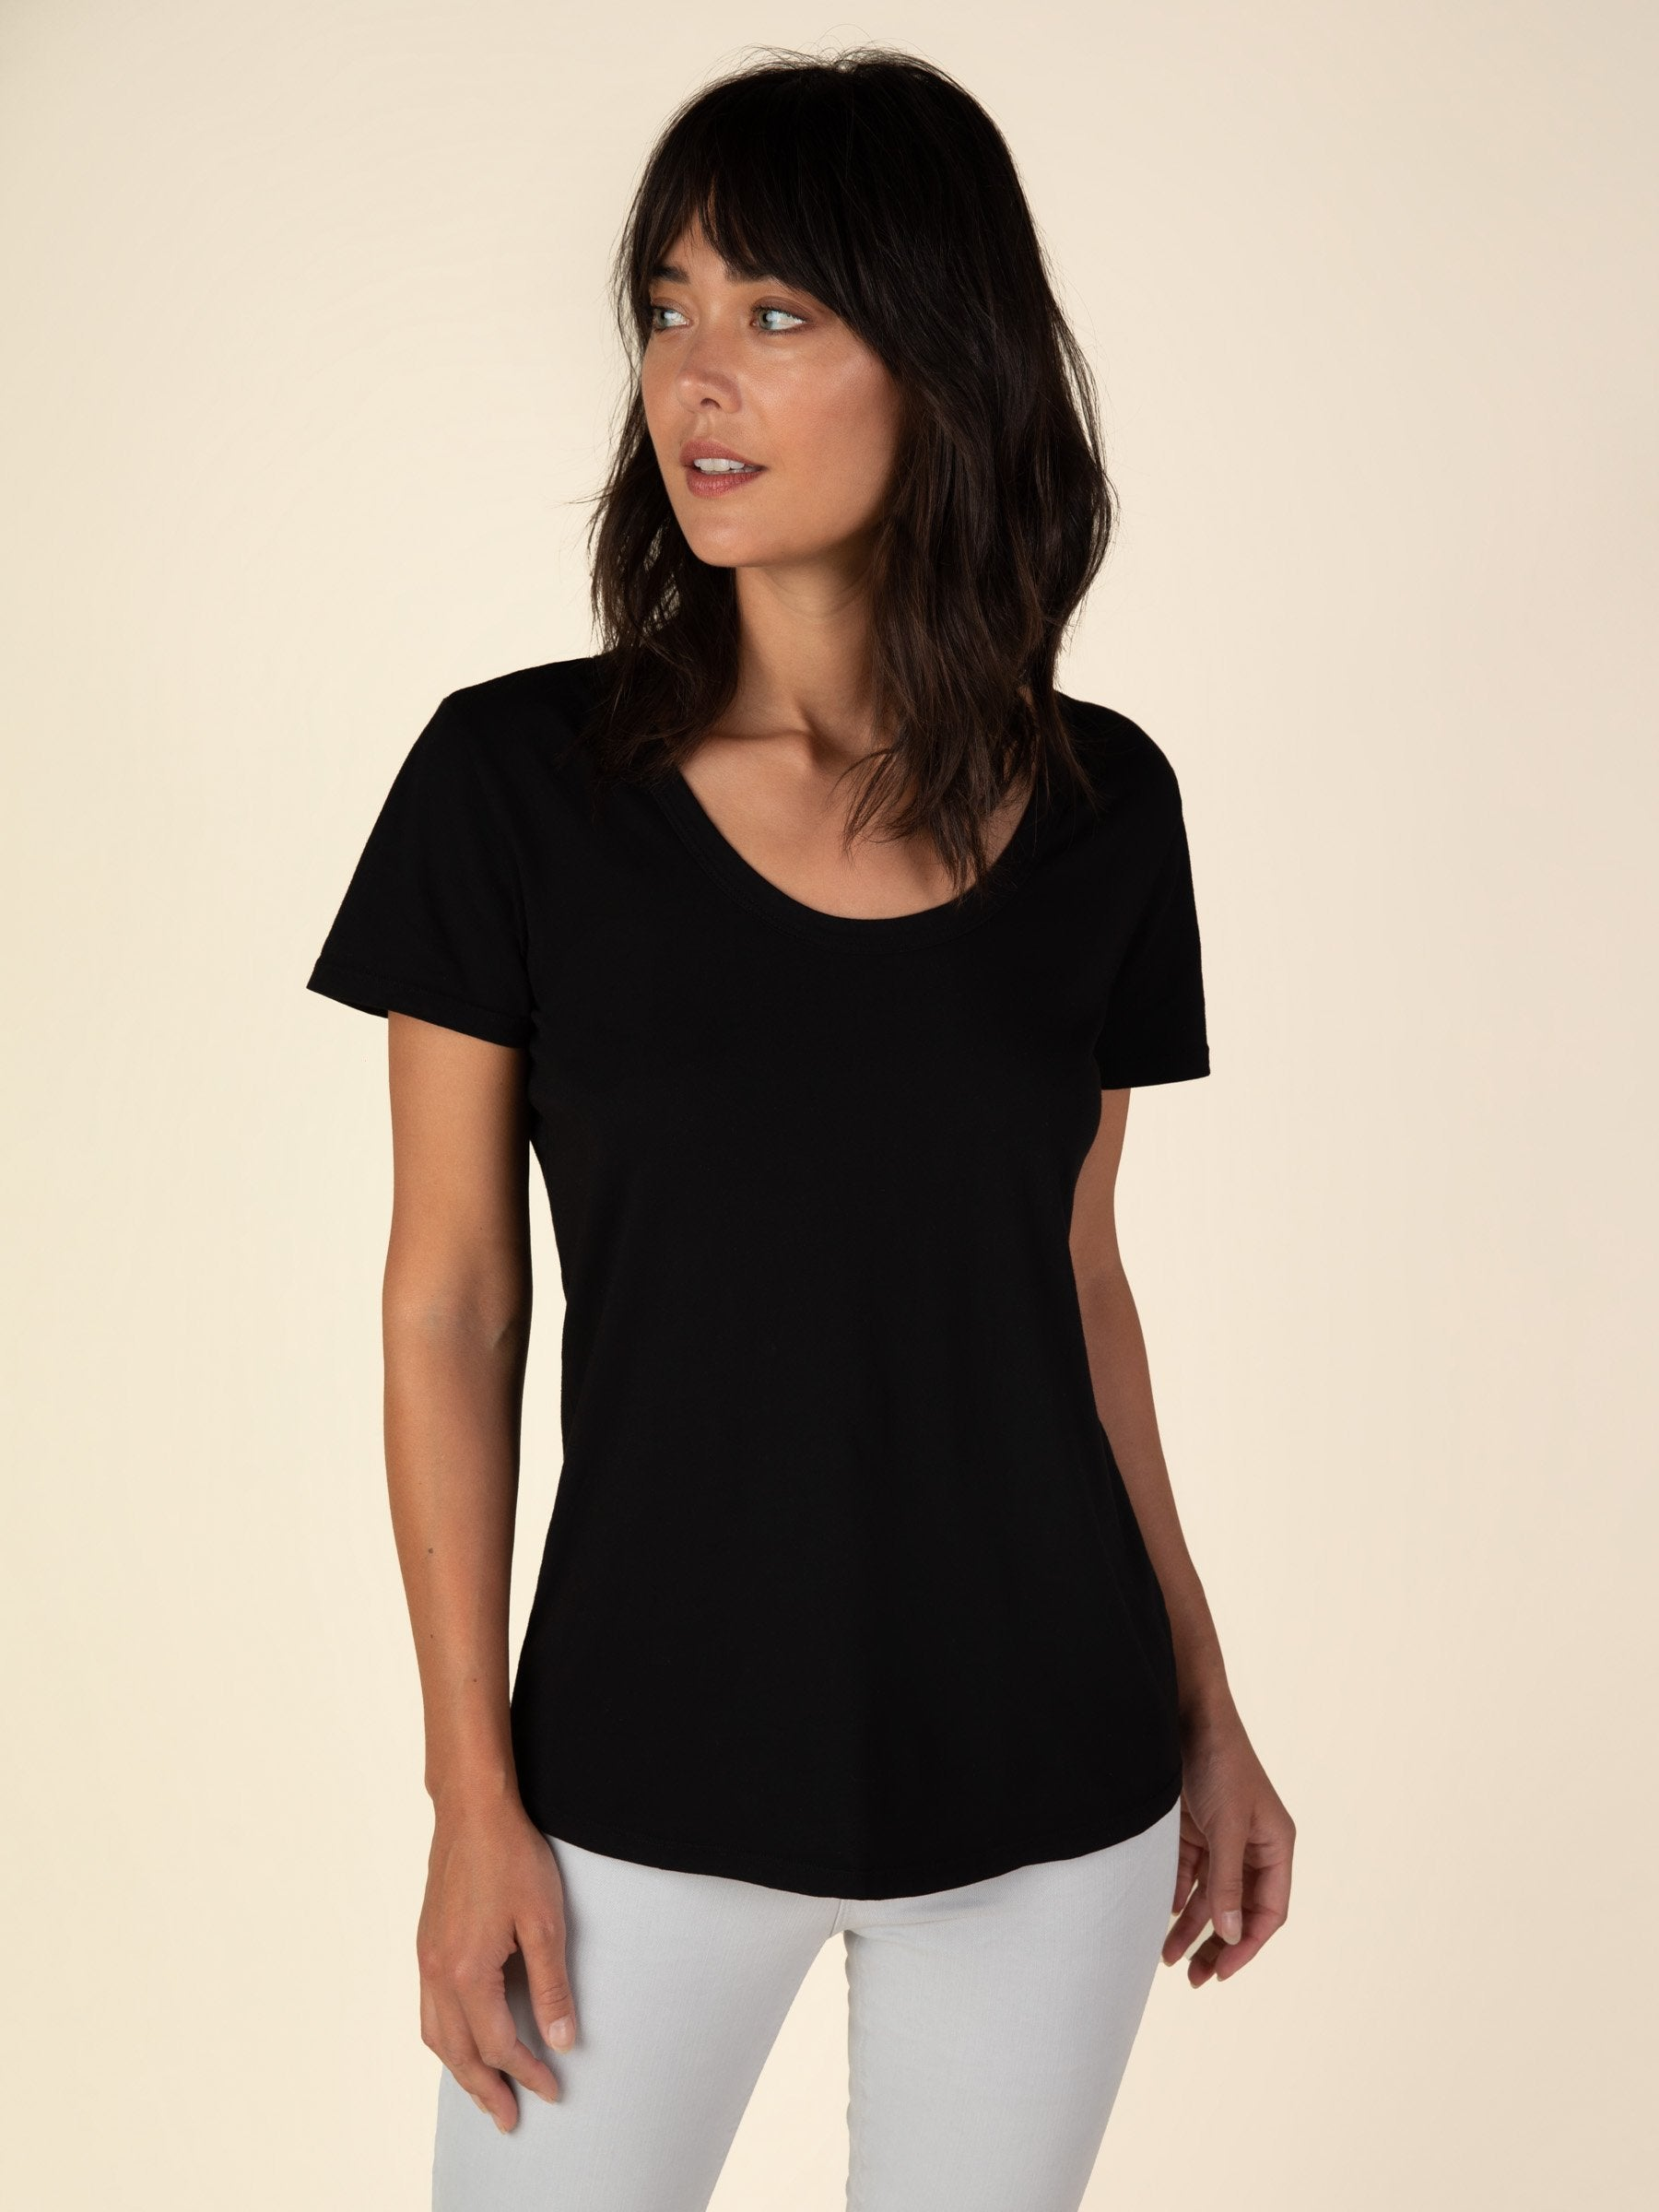 Scoop Neck Curved Hem Tee - Black